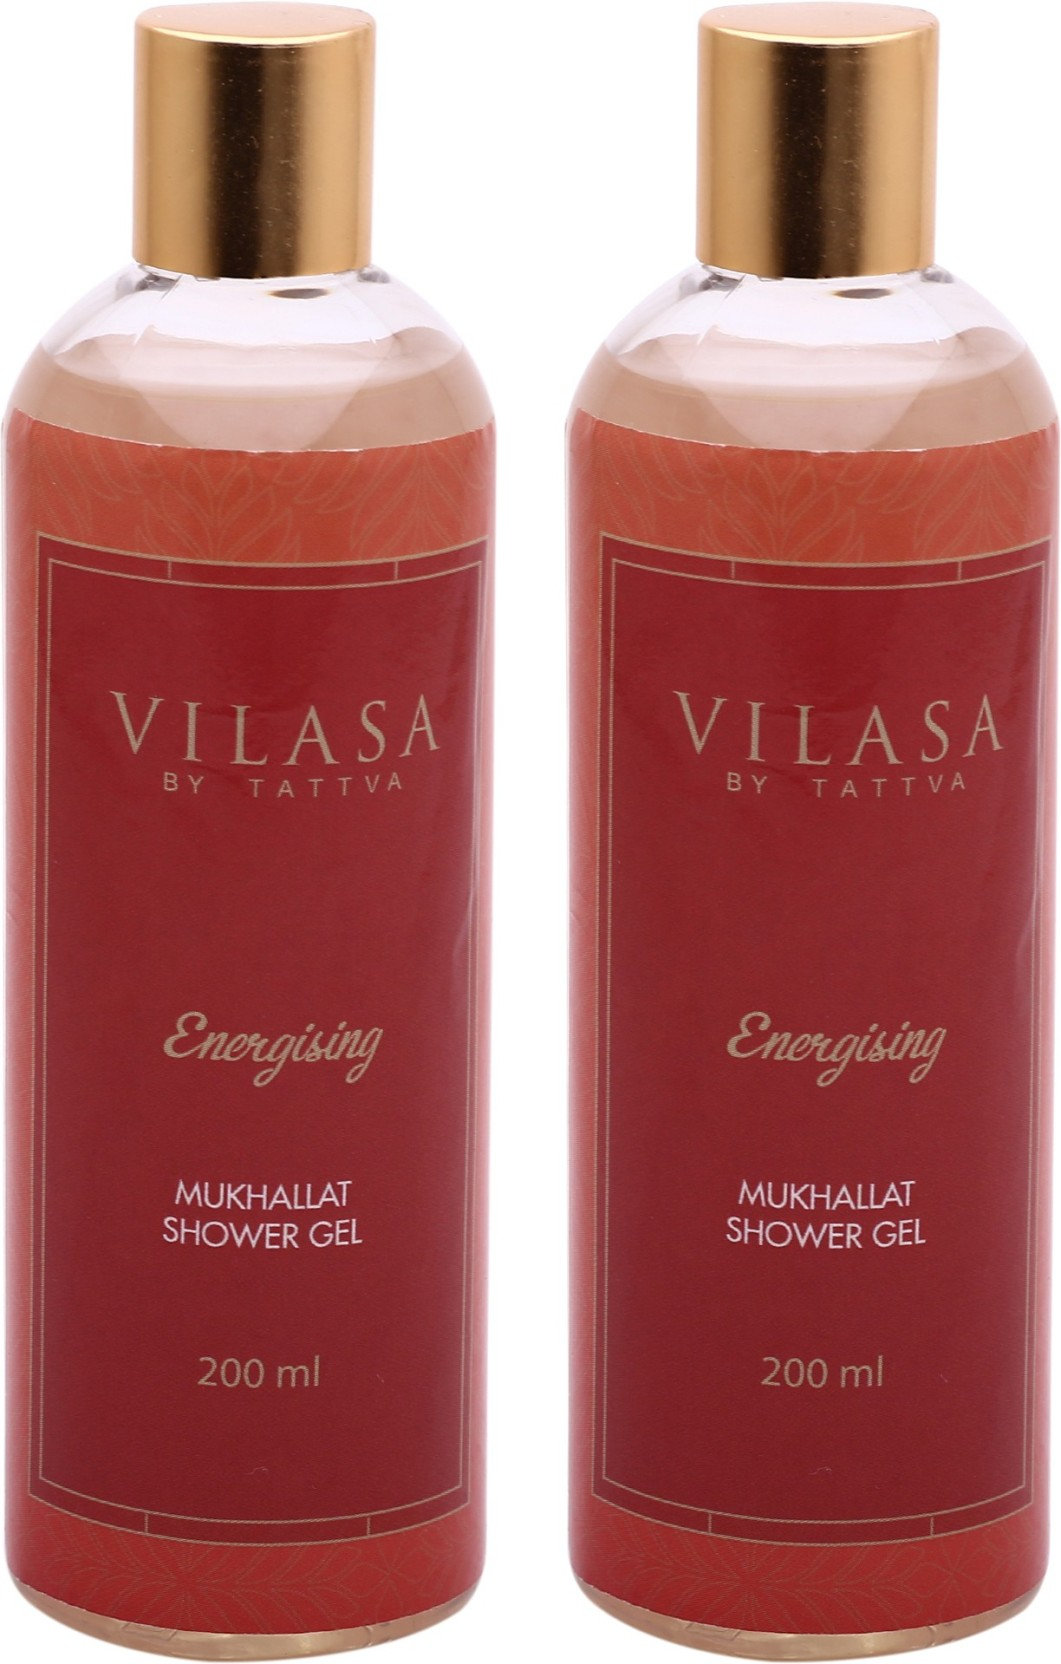 Vilasa By Tattva Mukhallut Shower Gel 200 Mlpack Of 2 Buy St Ives Sea Salt Ampamp Pacific Kelp Exfoliating Body Wash 400ml Add To Cart